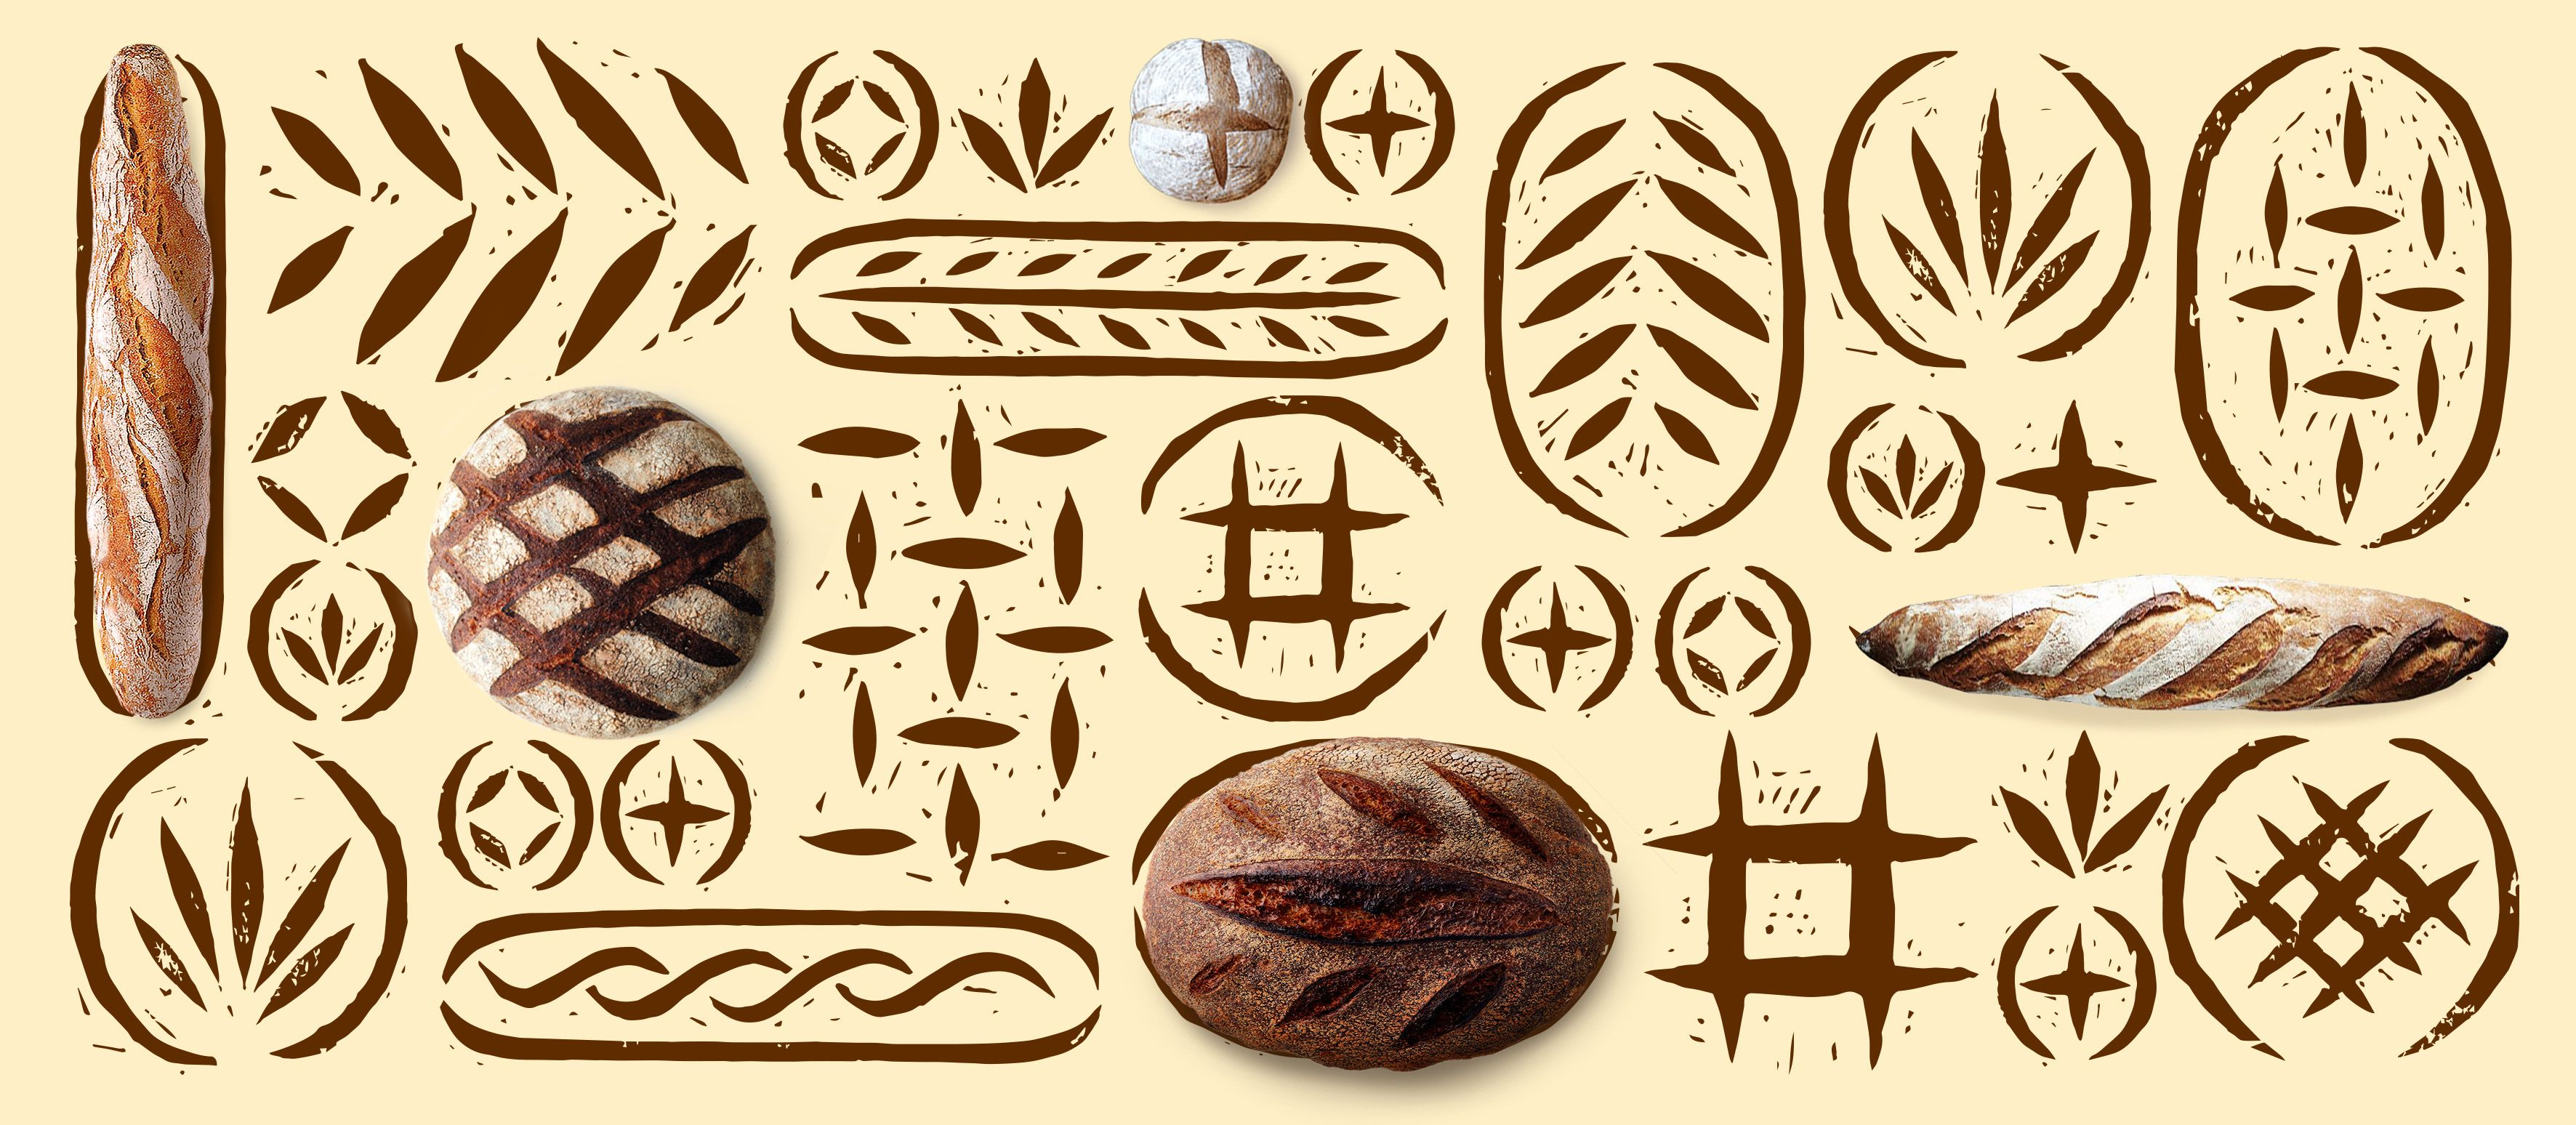 Пекарня Сурукиных Icon package, Adobe illustrator, Print